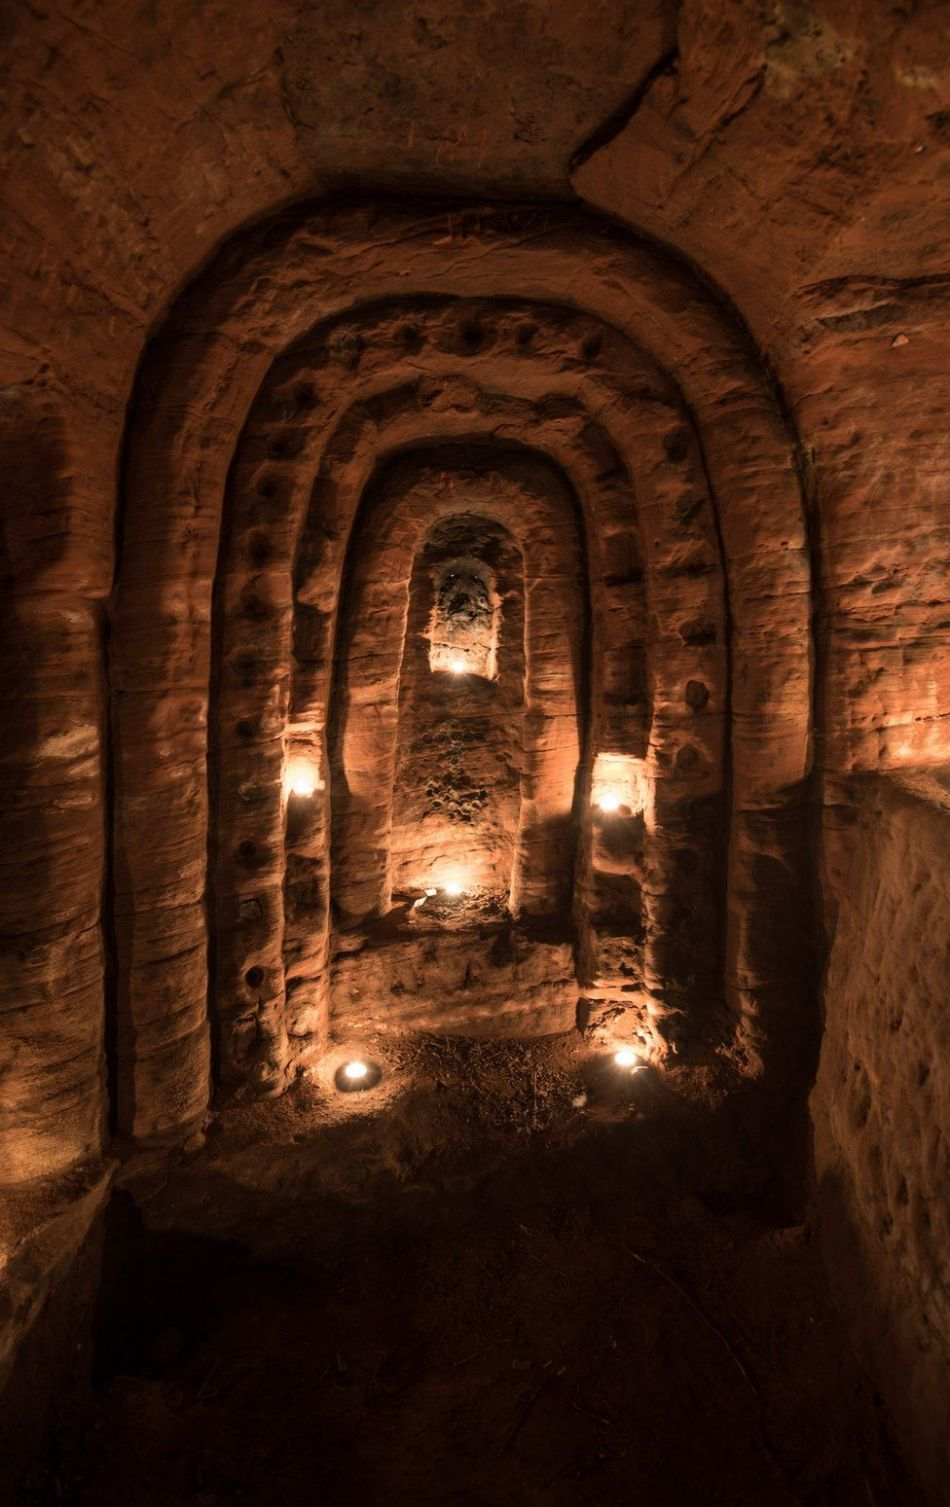 _95043757_caters_knights_templar_cave_7